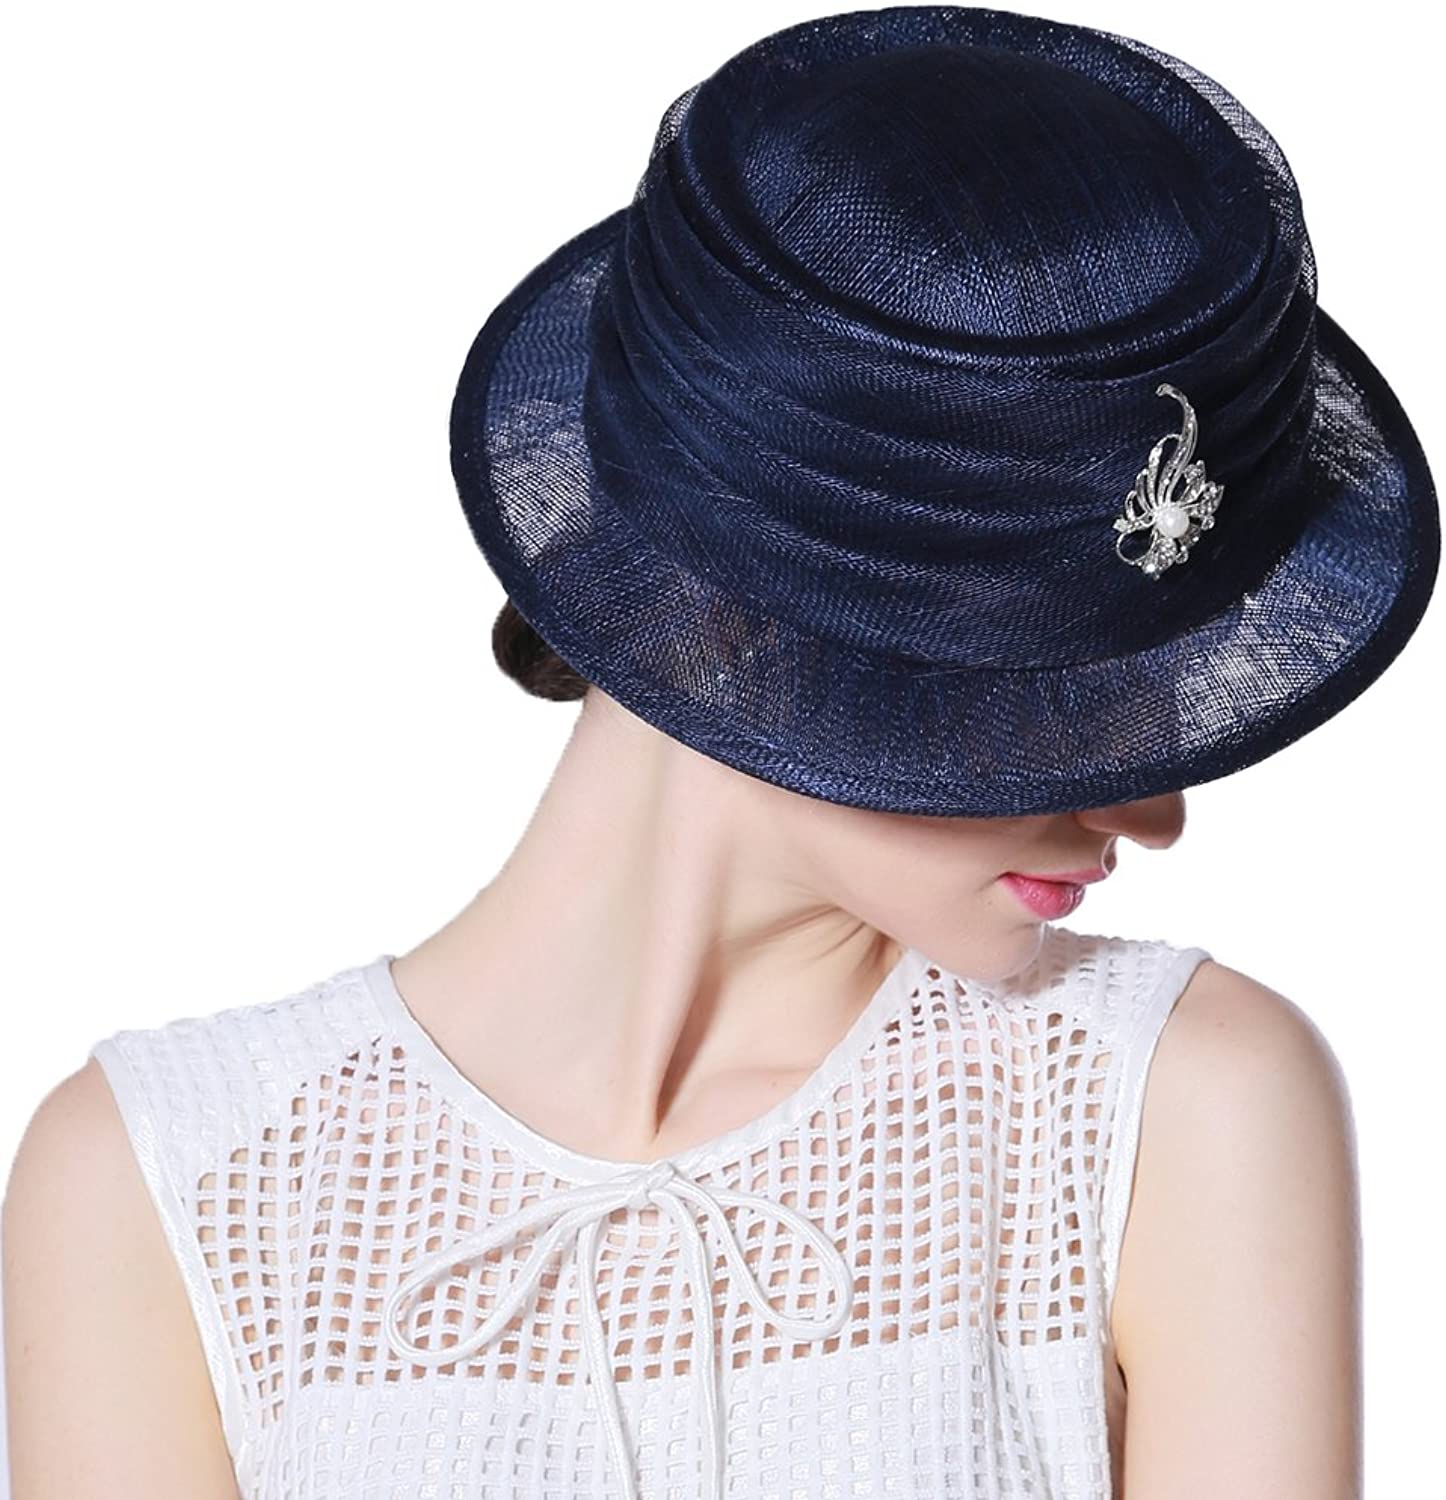 June's Young Summer Hats Sinamay Hats for Women 100% Sinamay Navy bluee color Fedoras